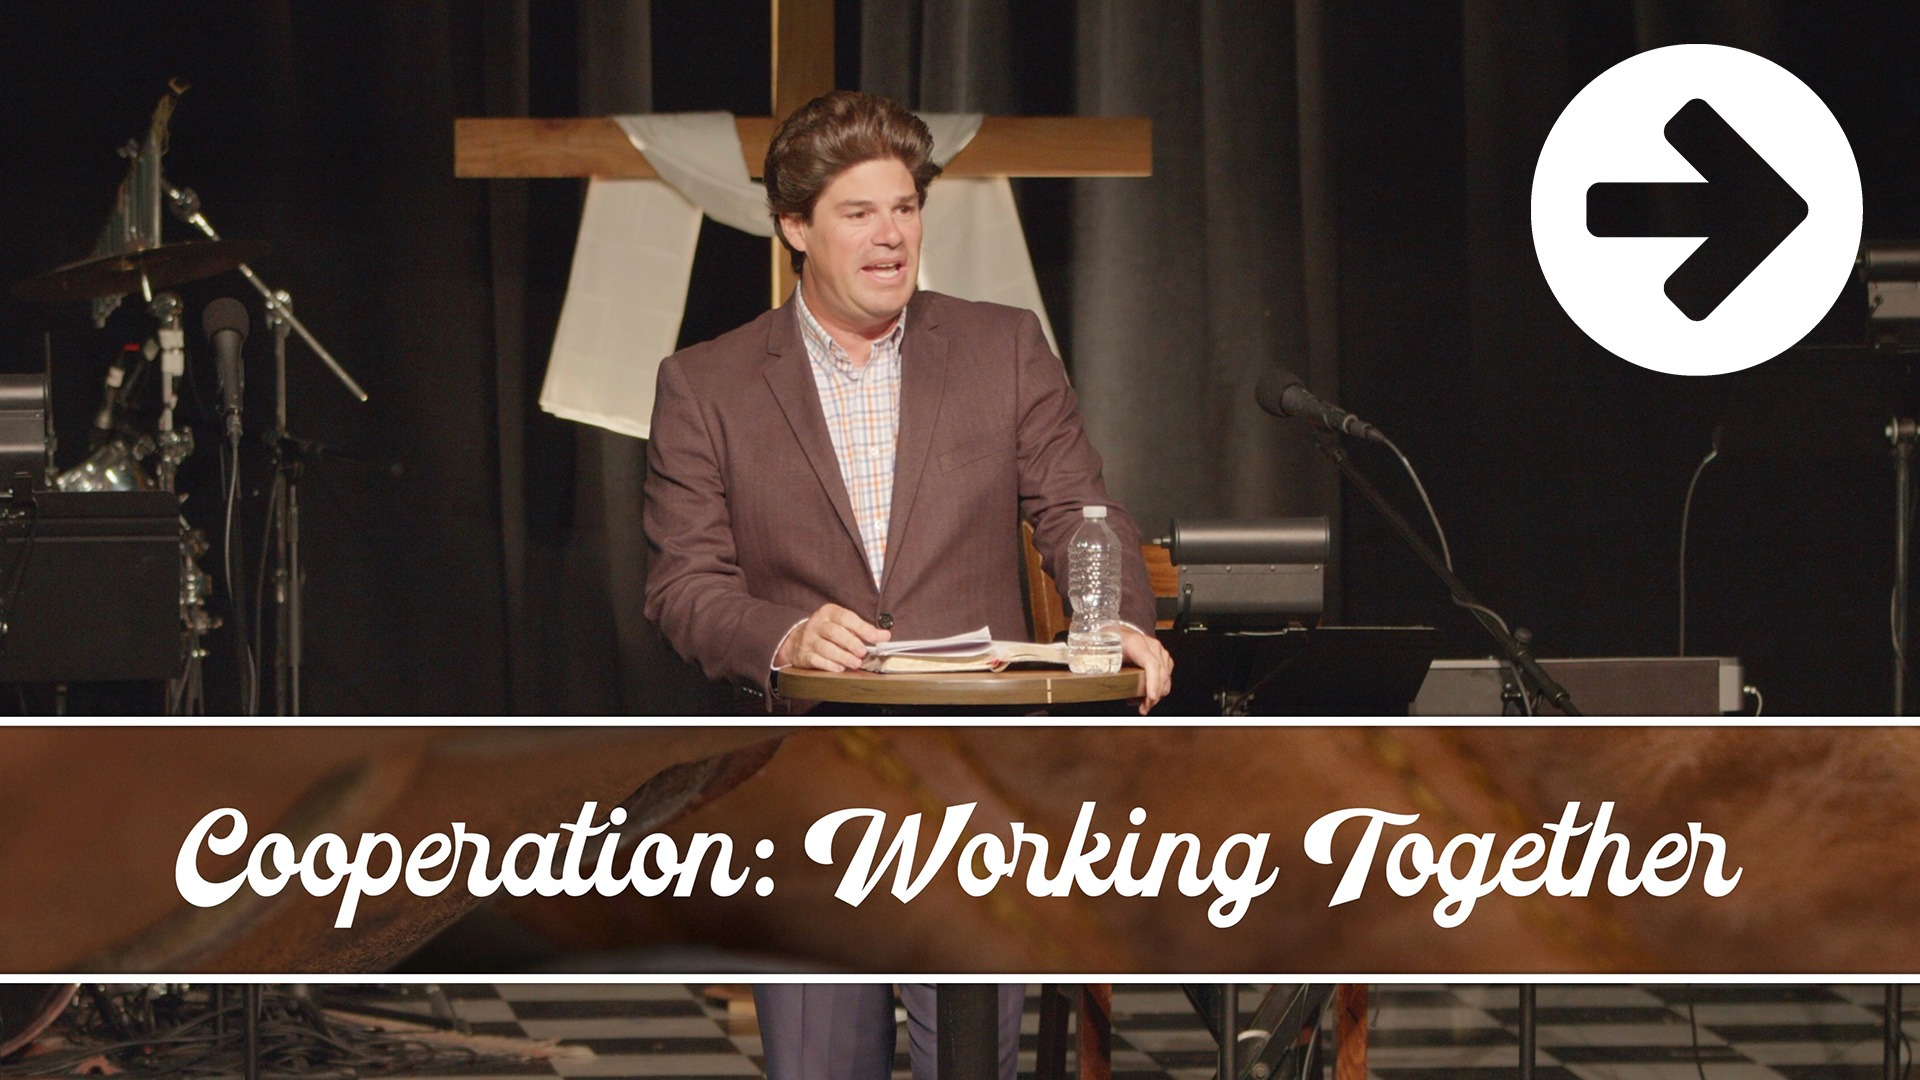 Cooperation: Working Together Image